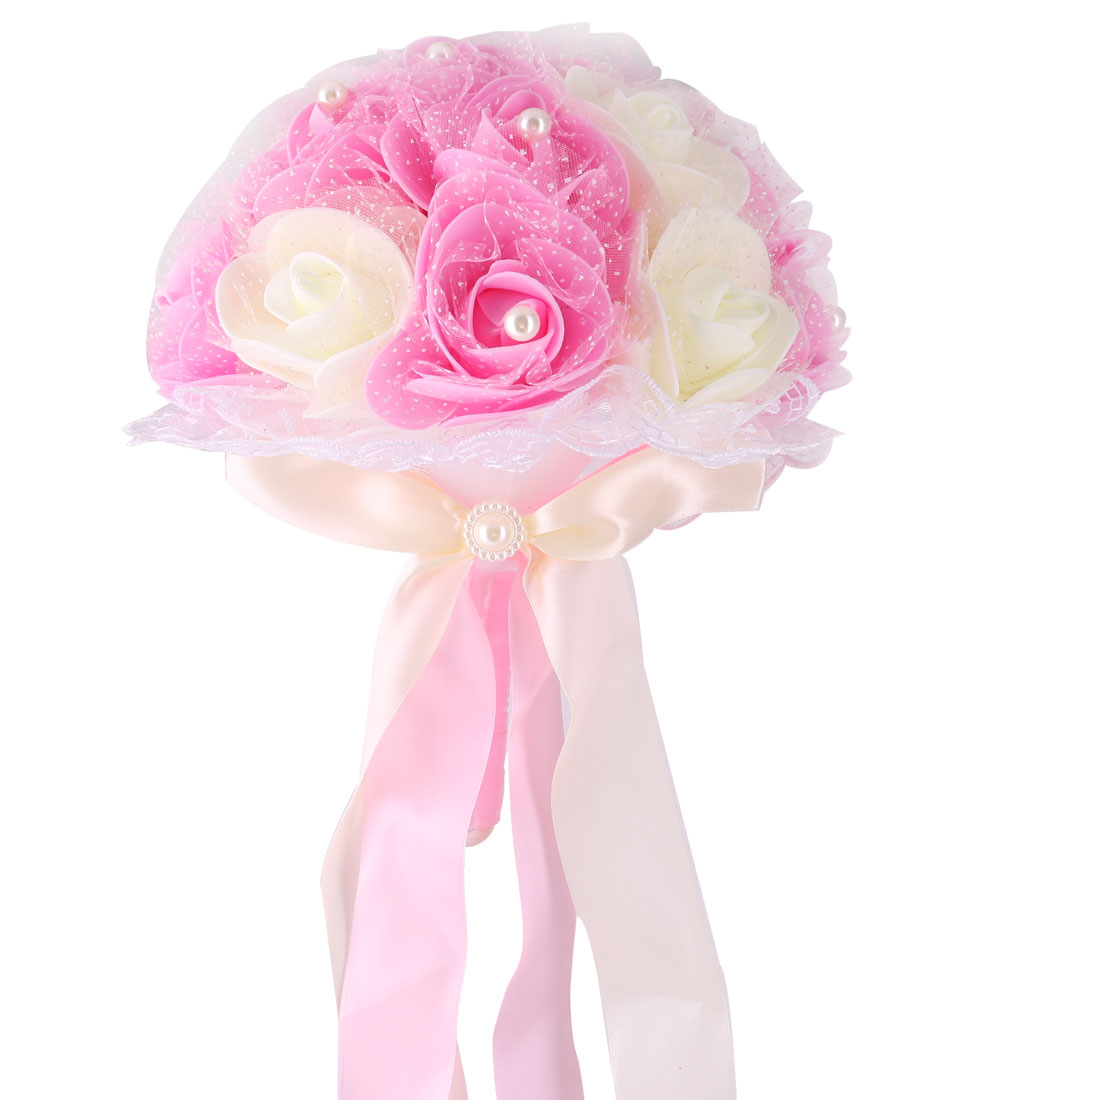 Wedding Bridal Foam Rose Buds Handhold Bouquet Craft Ornament Pink 9 Inch Dia